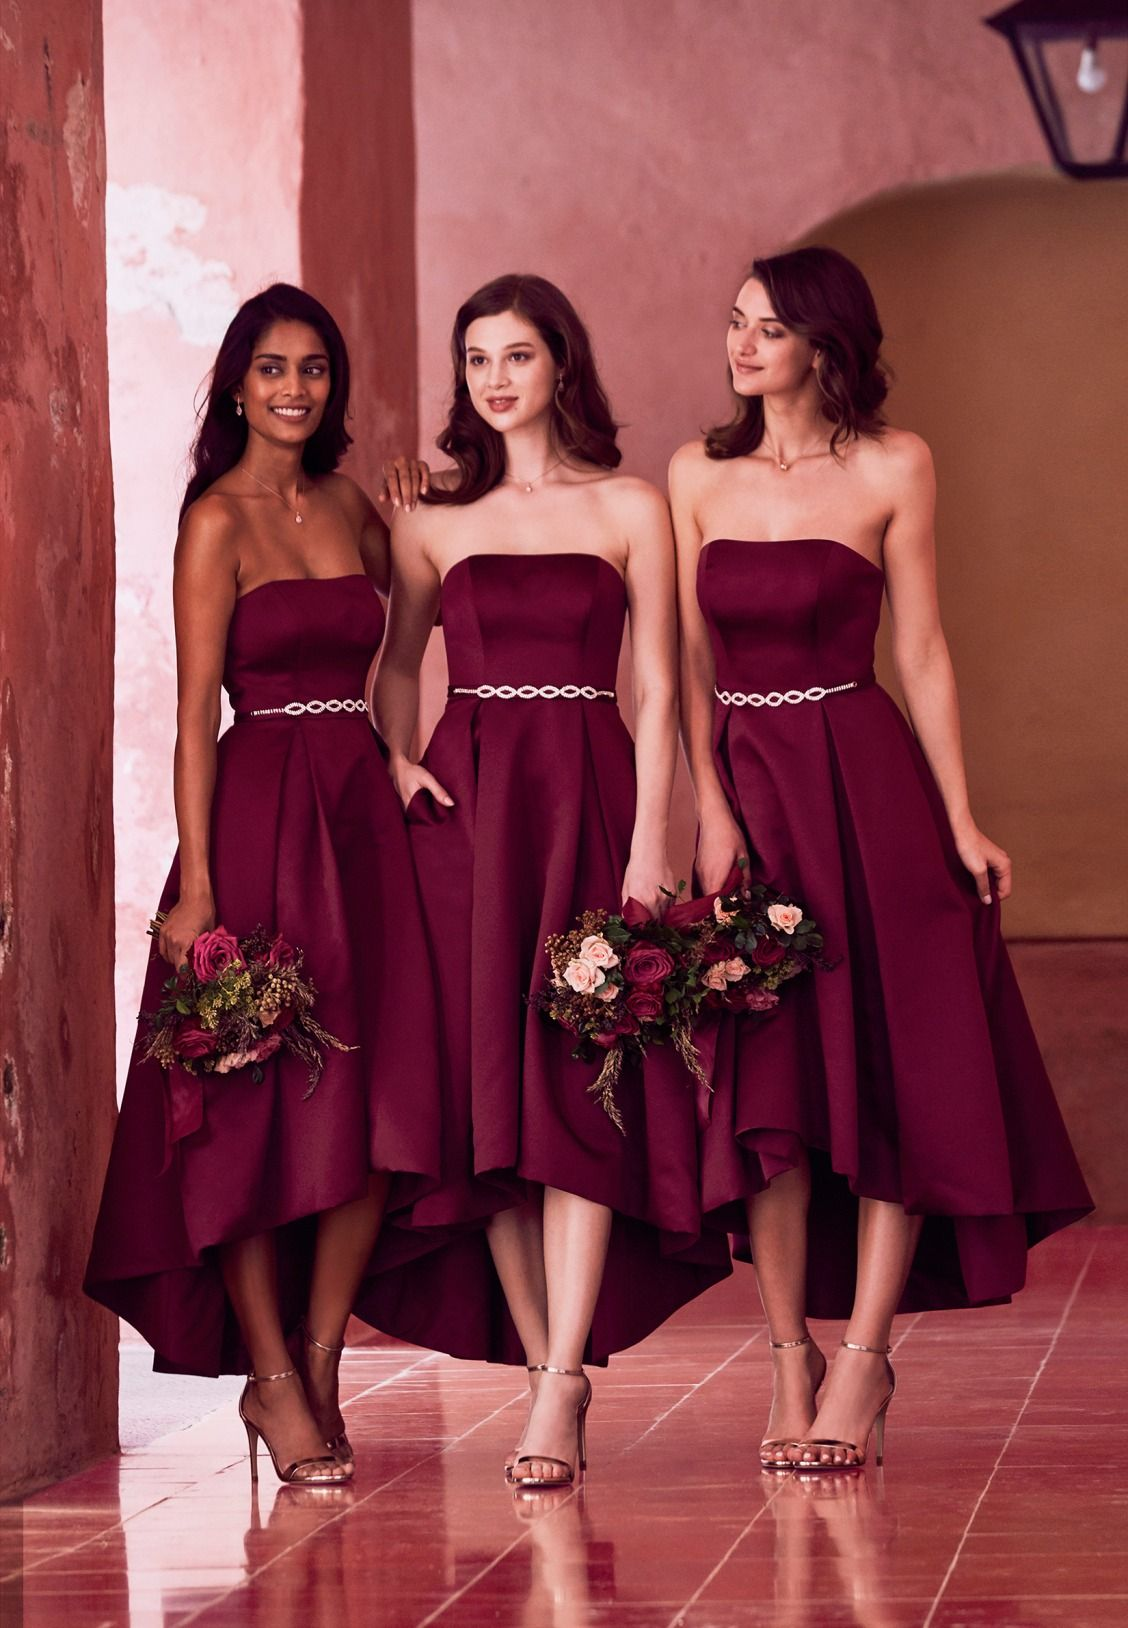 High Low Satin Bridesmaid Dress With Pockets David S Bridal High Low Bridesmaid Dresses Satin Bridesmaid Dresses Maroon Bridesmaid Dresses